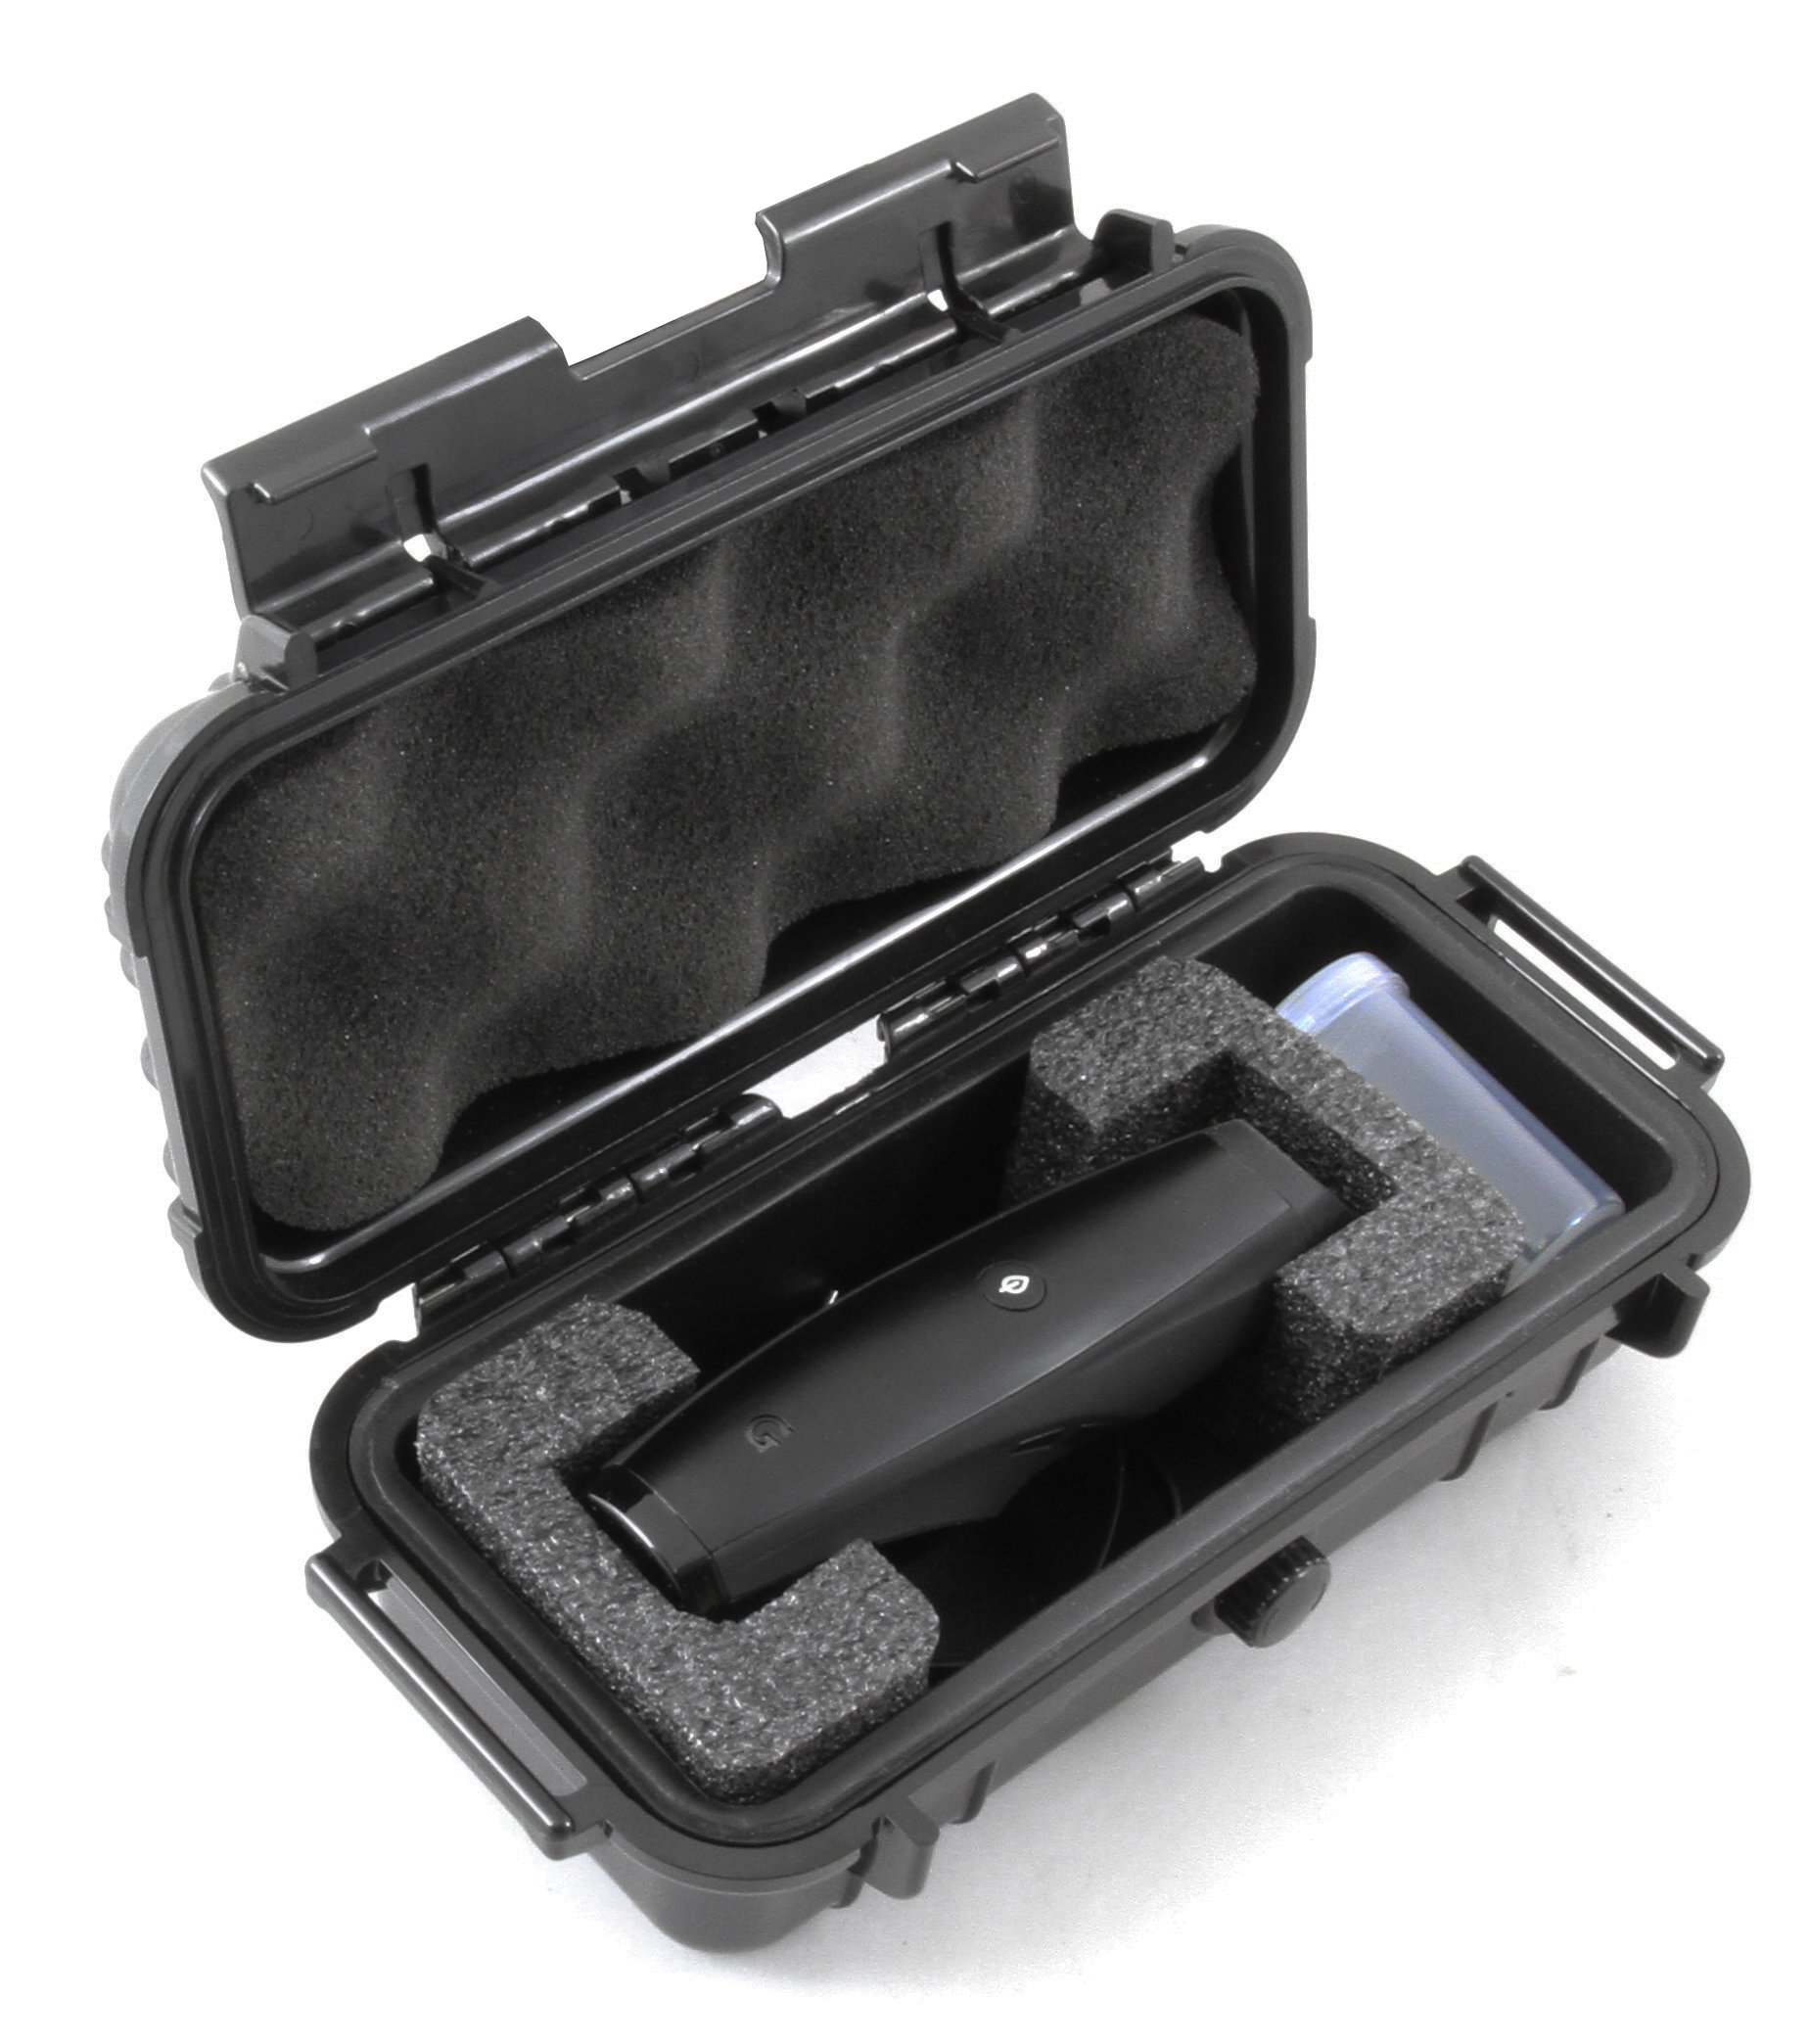 CLOUD/TEN G Pen Elite Case - Smell Proof Protective Carry Box Specially Designed to Hold Snoop Dogg Gpen Elite by Grenco Science , Charger and Small Accessories - Comes with Free Herb Canister